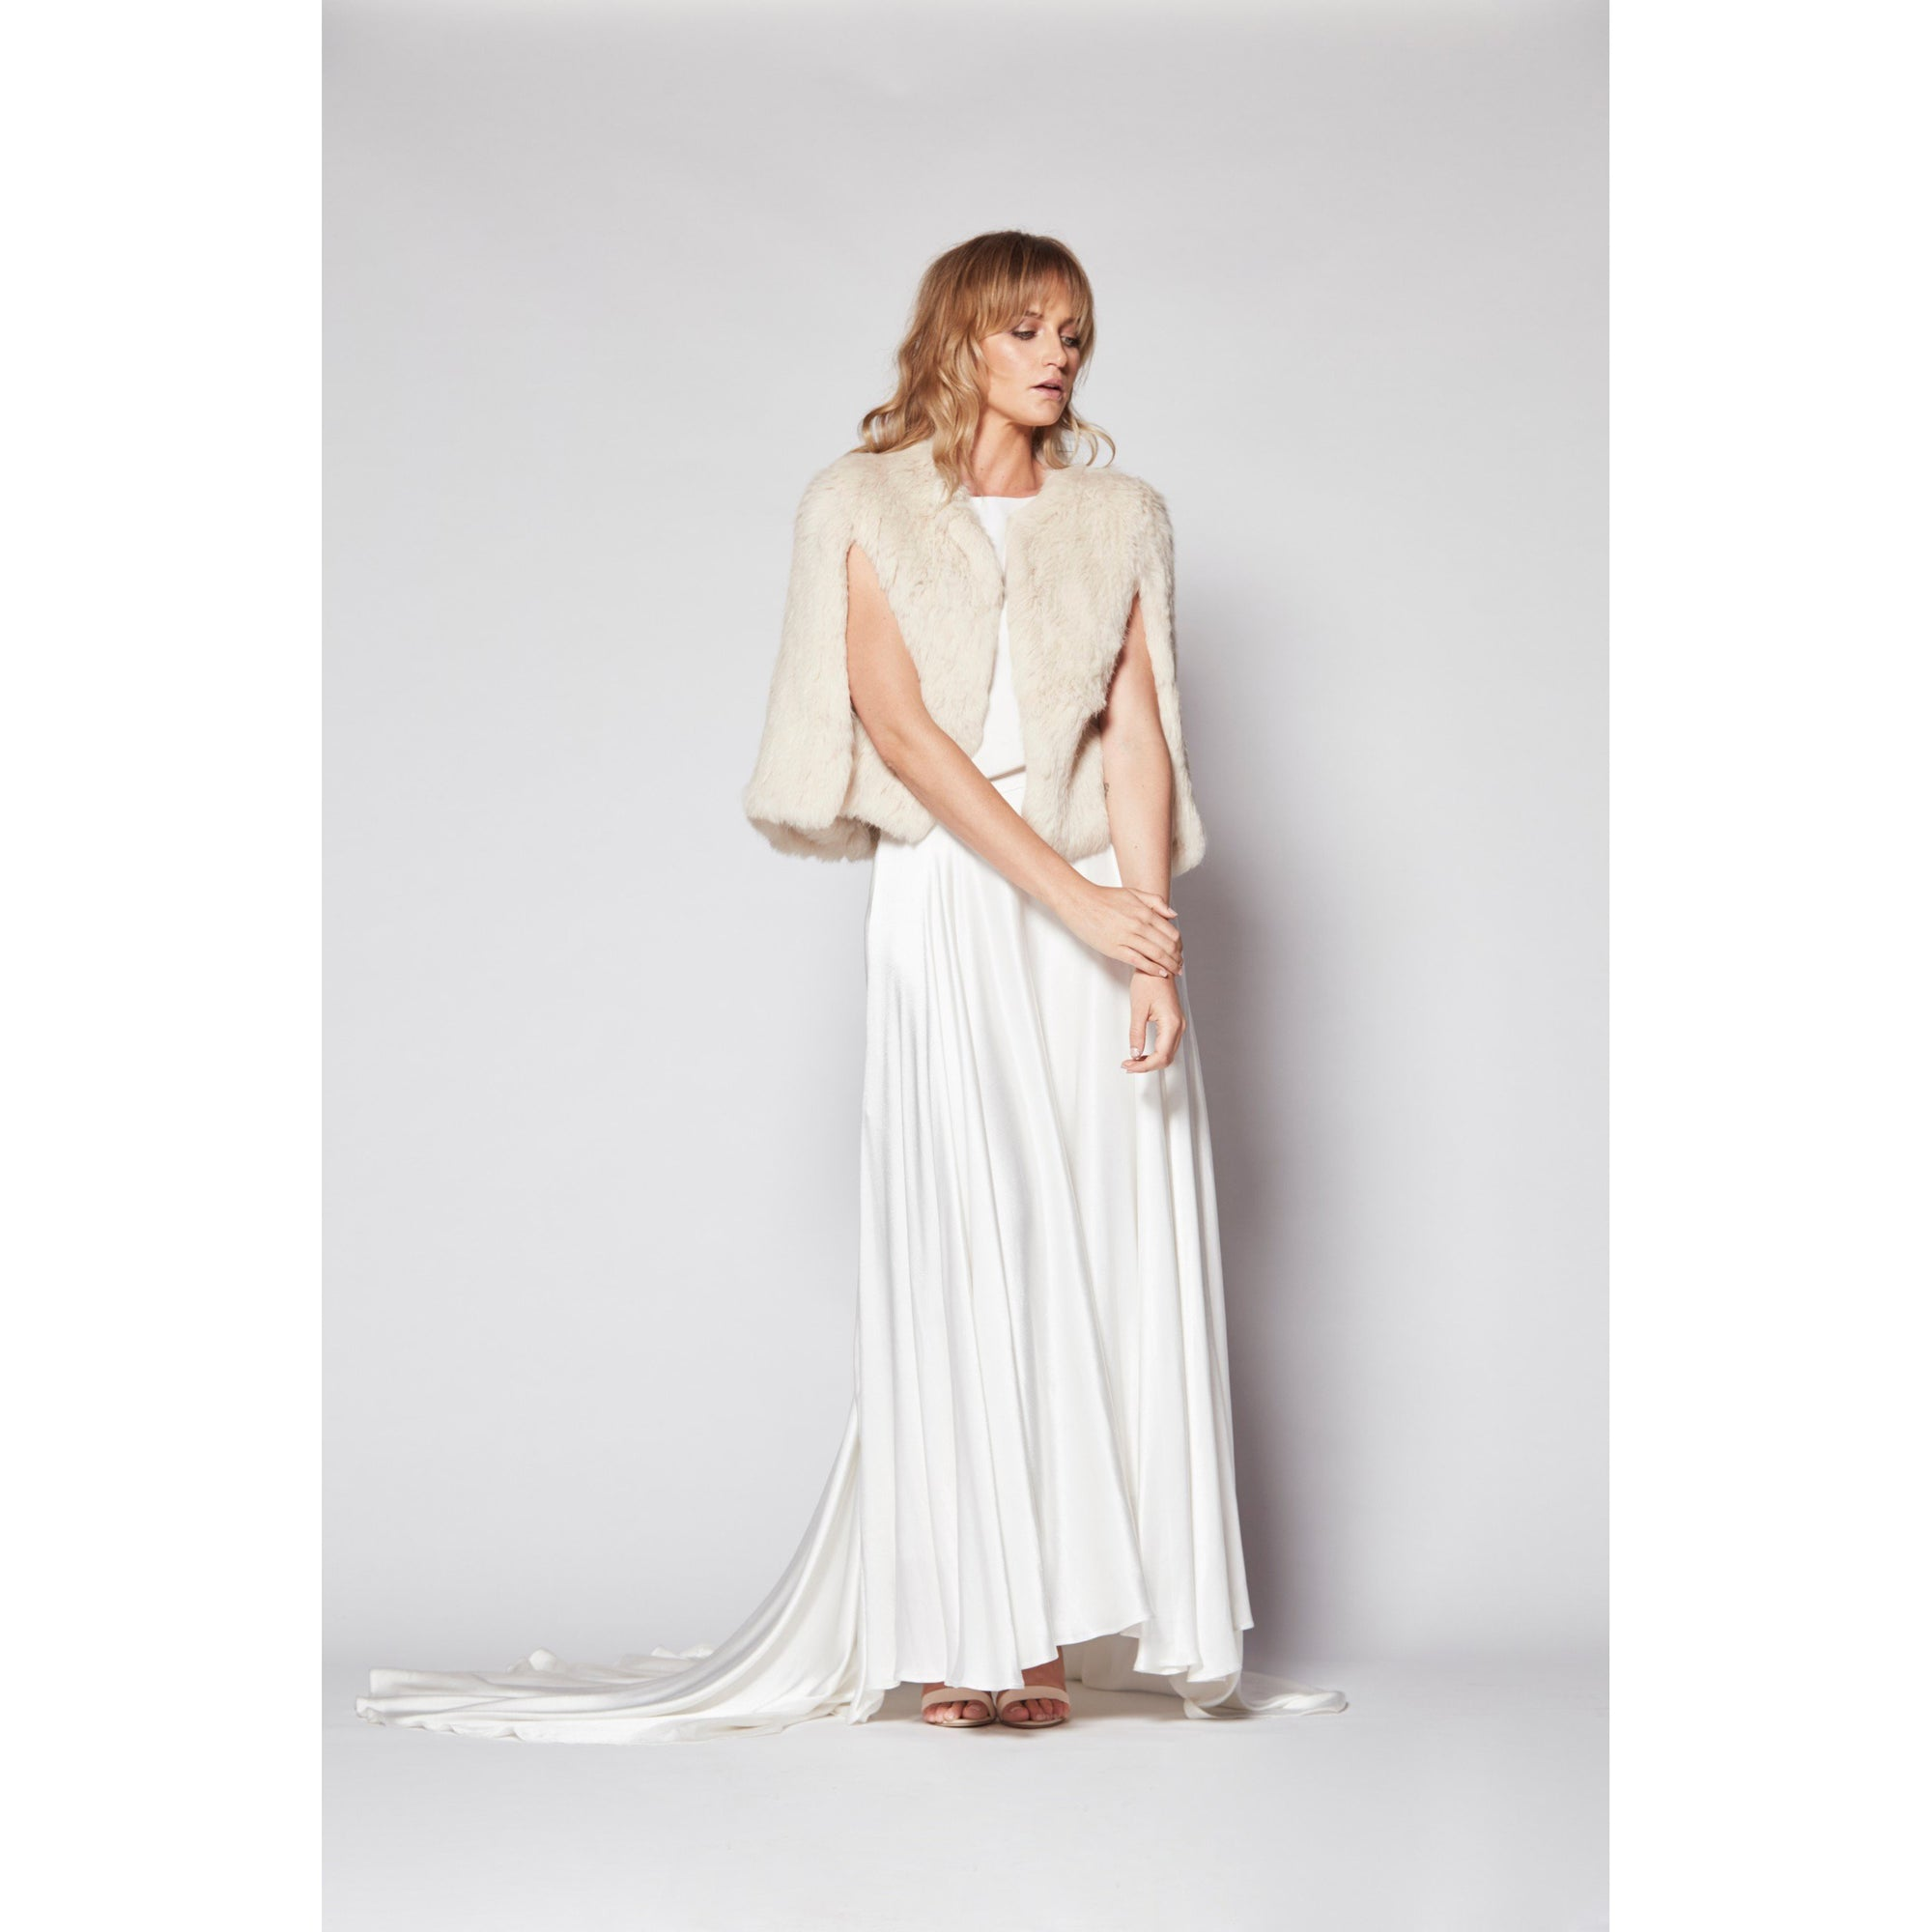 Aimer Fur Cape in Shell - Bridal Cover-Up - Couture - Roman & French